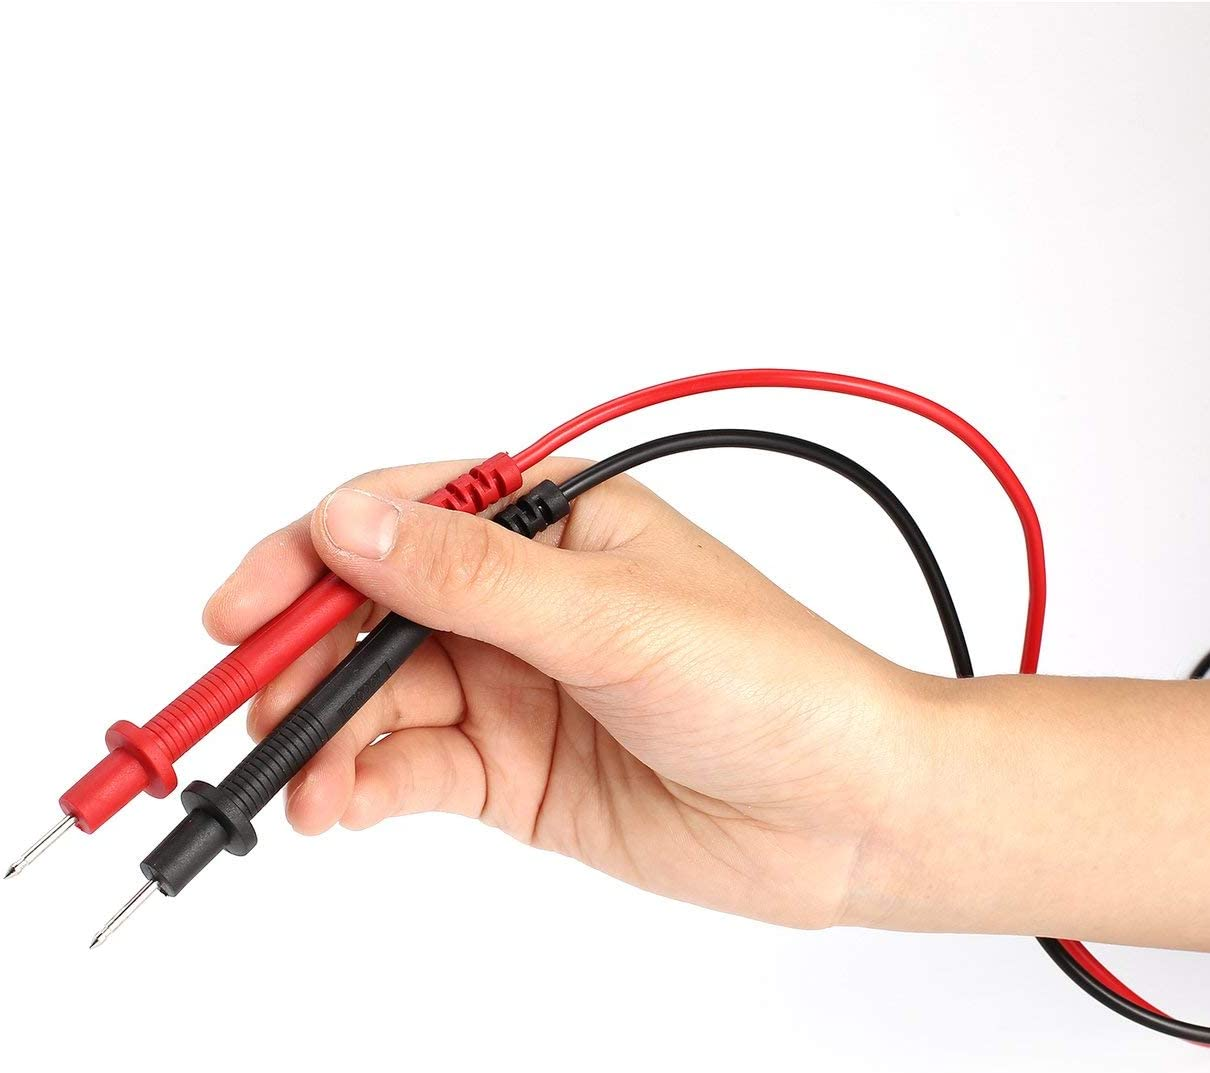 Tree-on-Life Digital Multimeter Universal Probe Test Leads Cable Pin Needle Tip Multi Meter Tester Wire Test Pen 2A//1000V CATⅡ 1 Pair